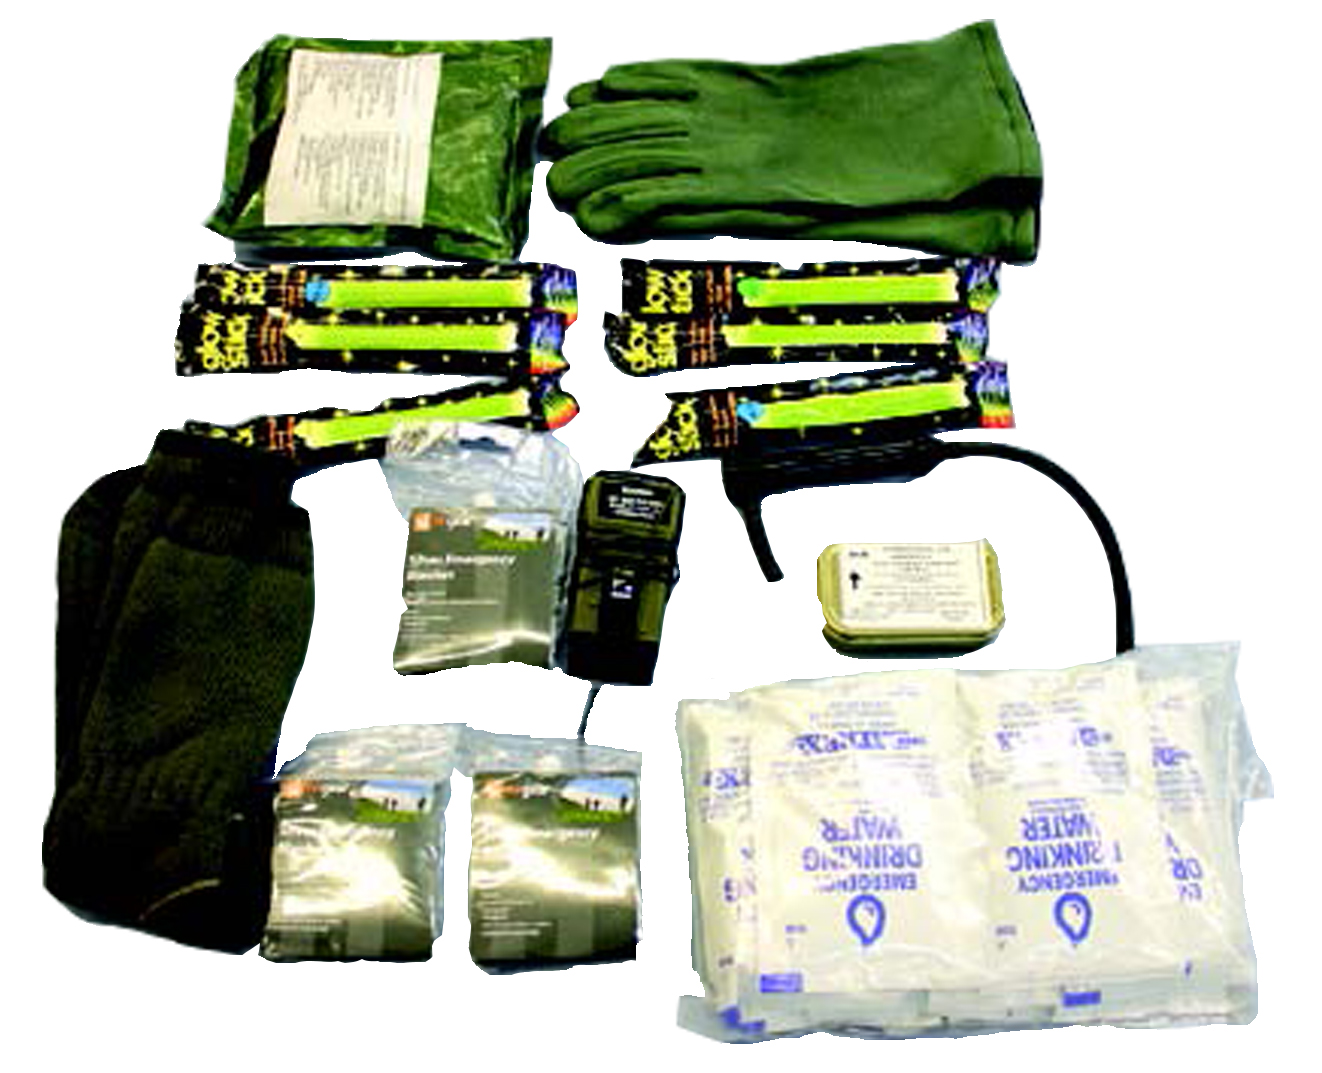 IrvinGQ Aircraft survival pack contents